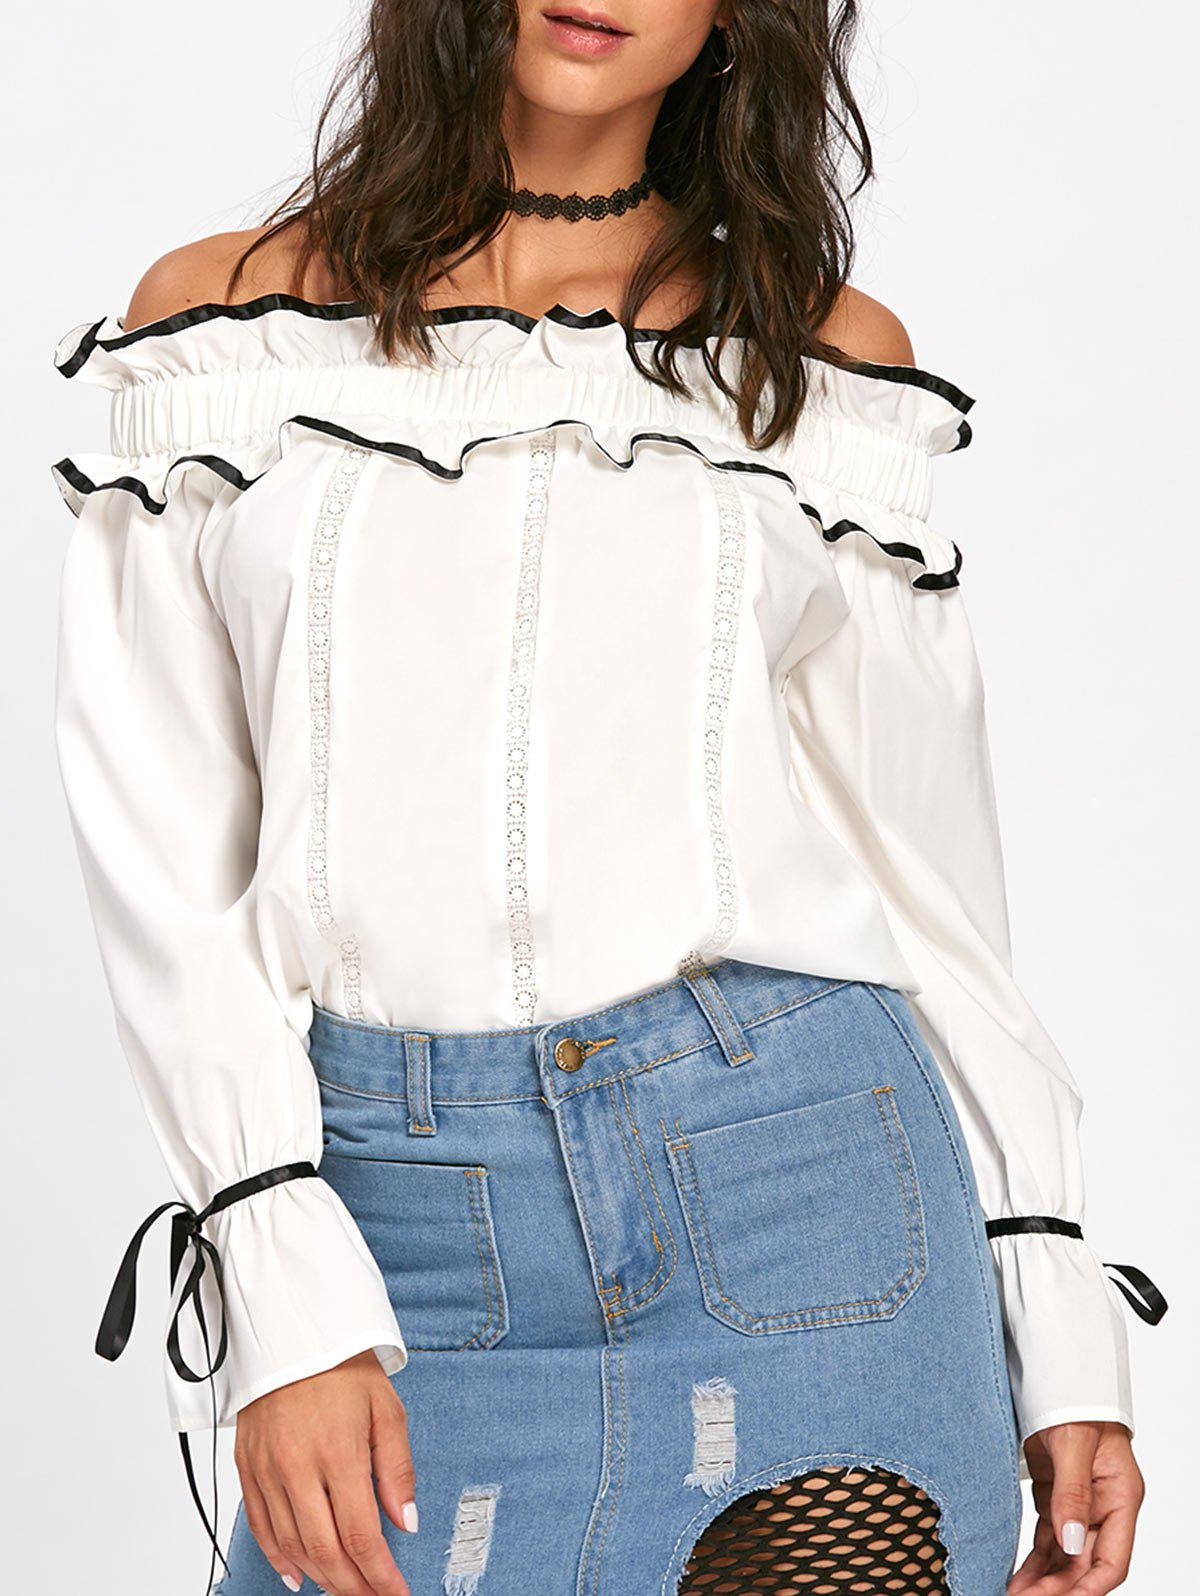 Hollow Out Ruffles Bowknot Off The Shoulder BlouseWOMEN<br><br>Size: M; Color: OFF-WHITE; Style: Casual; Material: Cotton,Polyester; Shirt Length: Regular; Sleeve Length: Full; Collar: Off The Shoulder; Pattern Type: Others; Embellishment: Bowknot,Hollow Out; Season: Fall,Spring; Weight: 0.2500kg; Package Contents: 1 x Blouse;